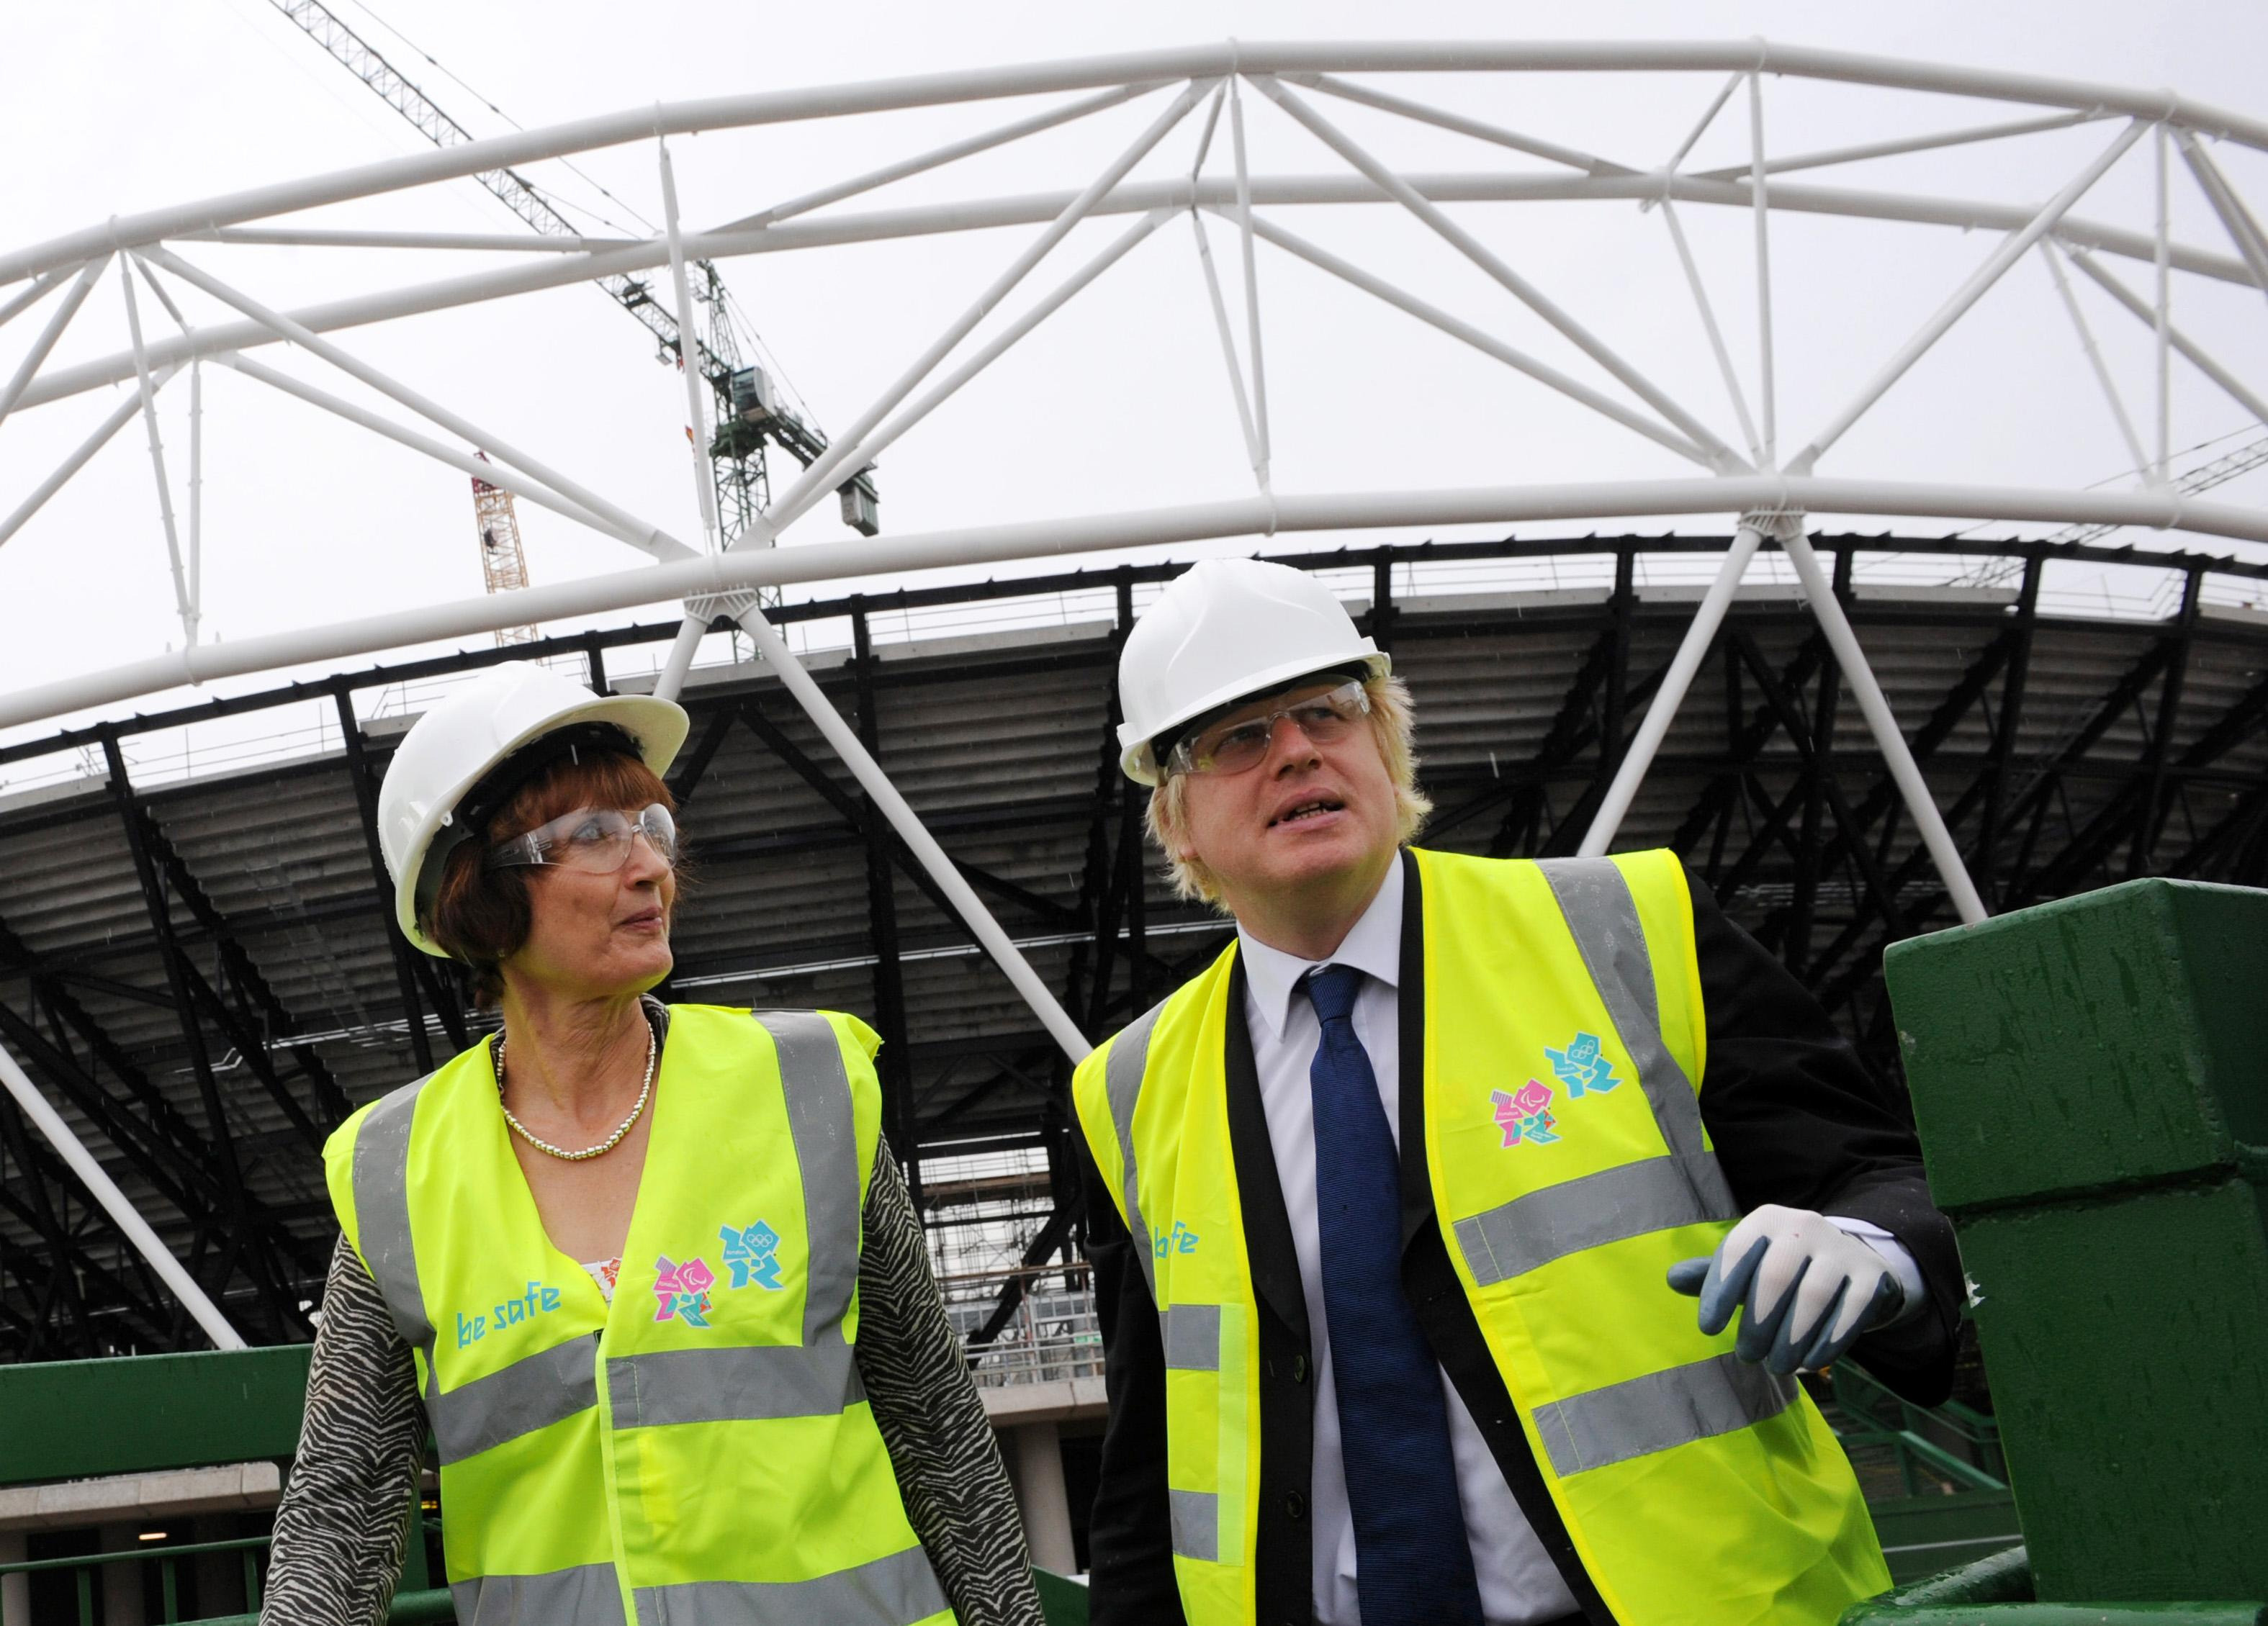 London Mayor Boris Johnson and Olympics Minister Tessa Jowell arrive in Stratford to view ongoing construction work at the Olympic stadium in east London.